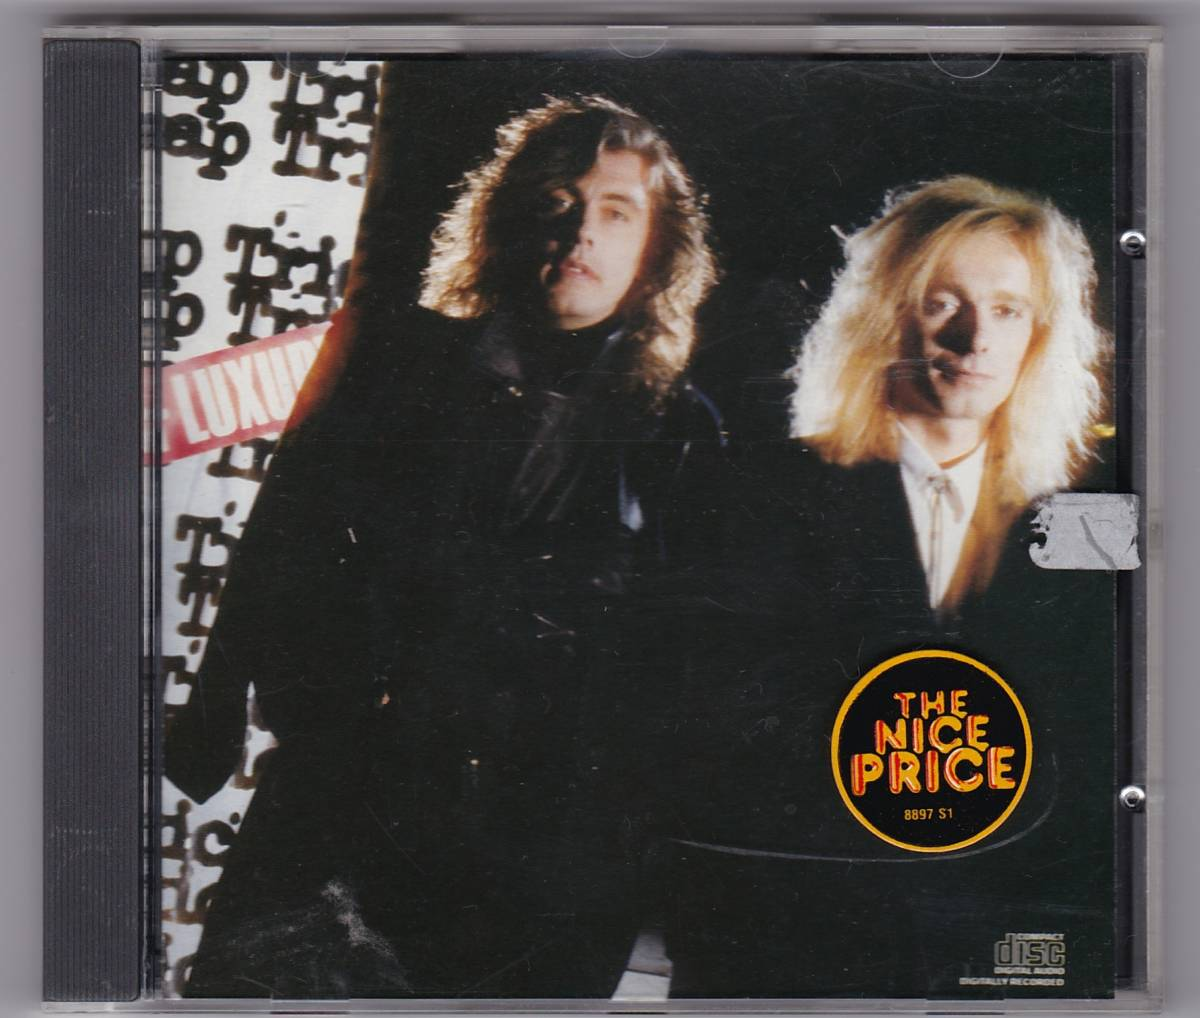 Cheap Trick / Lap Of Luxury チープトリック 輸入盤 中古CD The Flame収録 送料込み